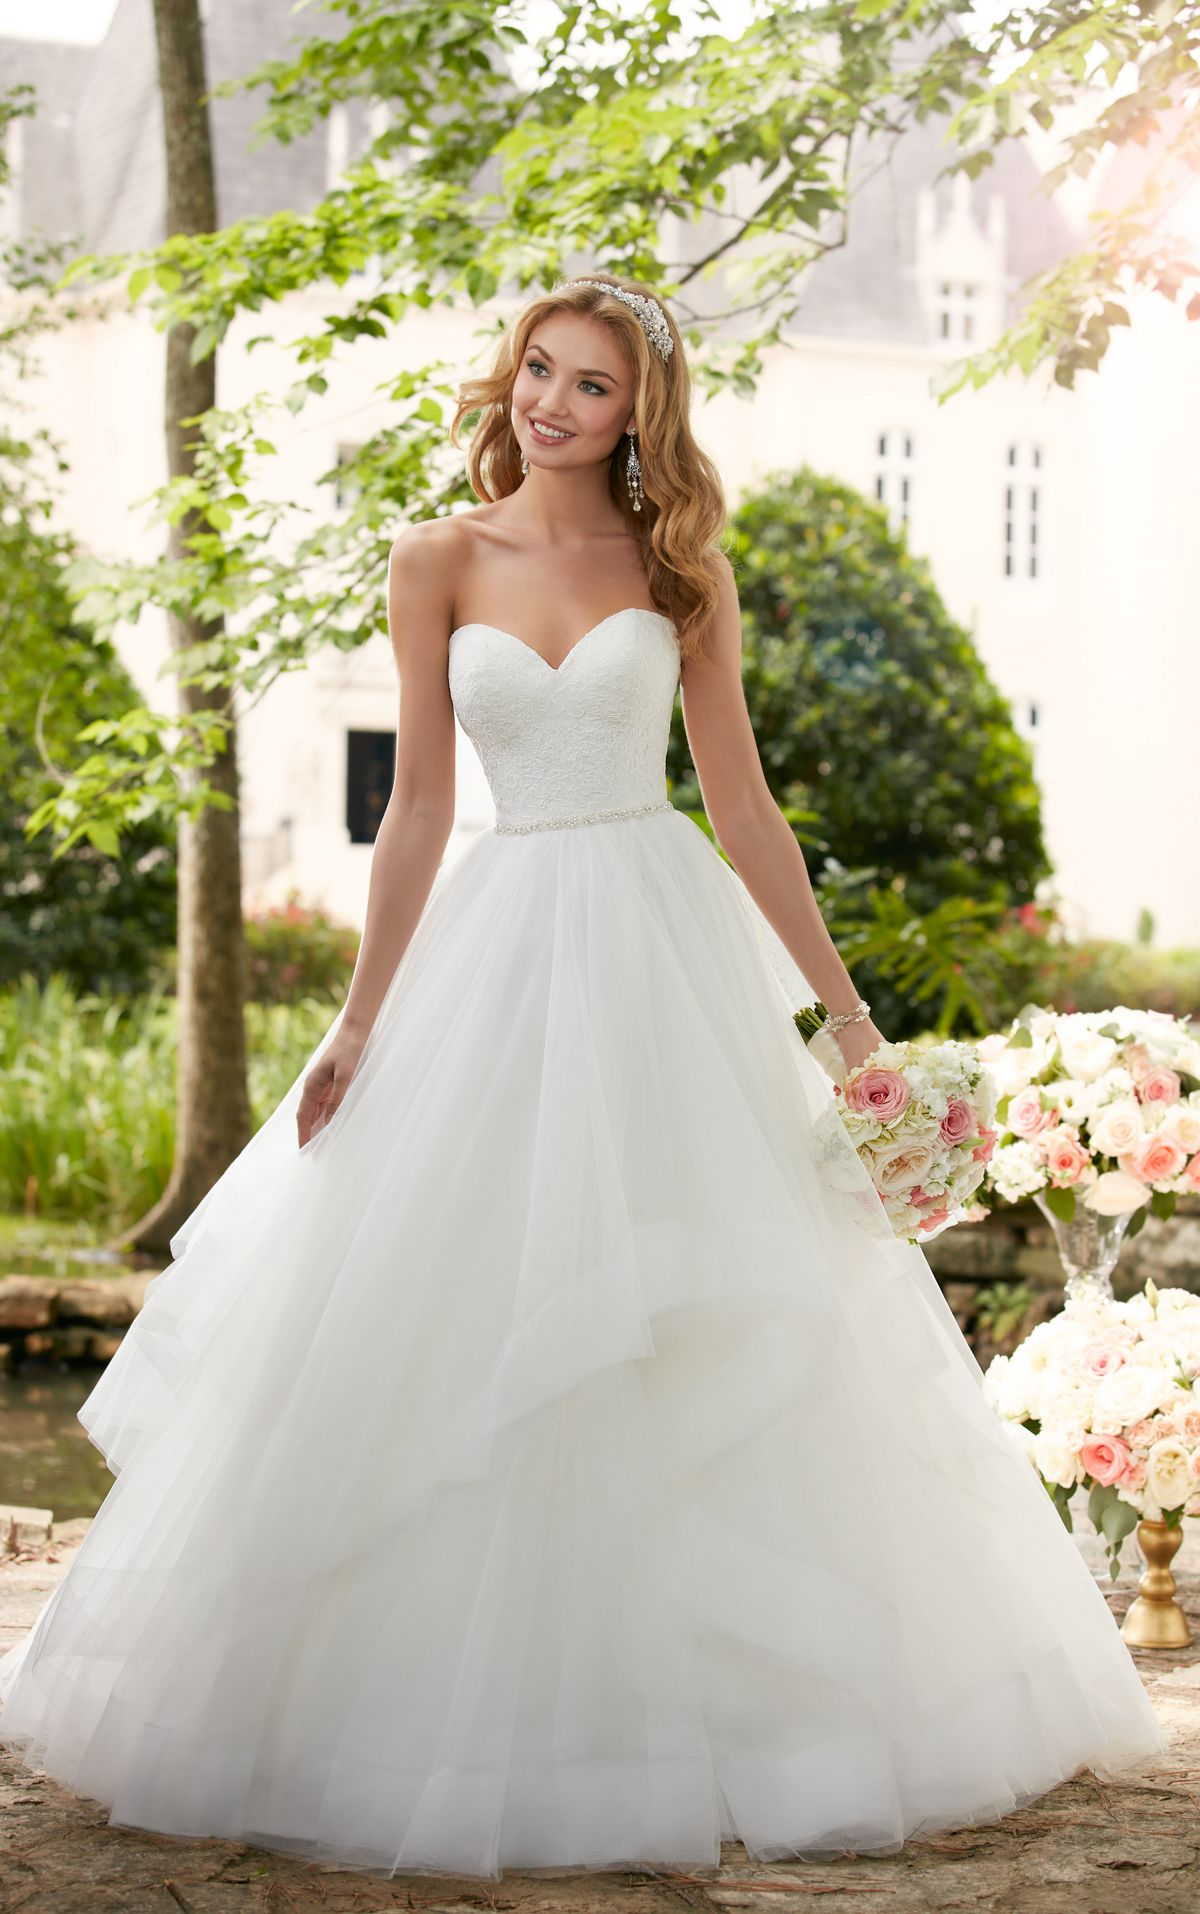 Wedding dresses stella york strapless sweetheart neckline and